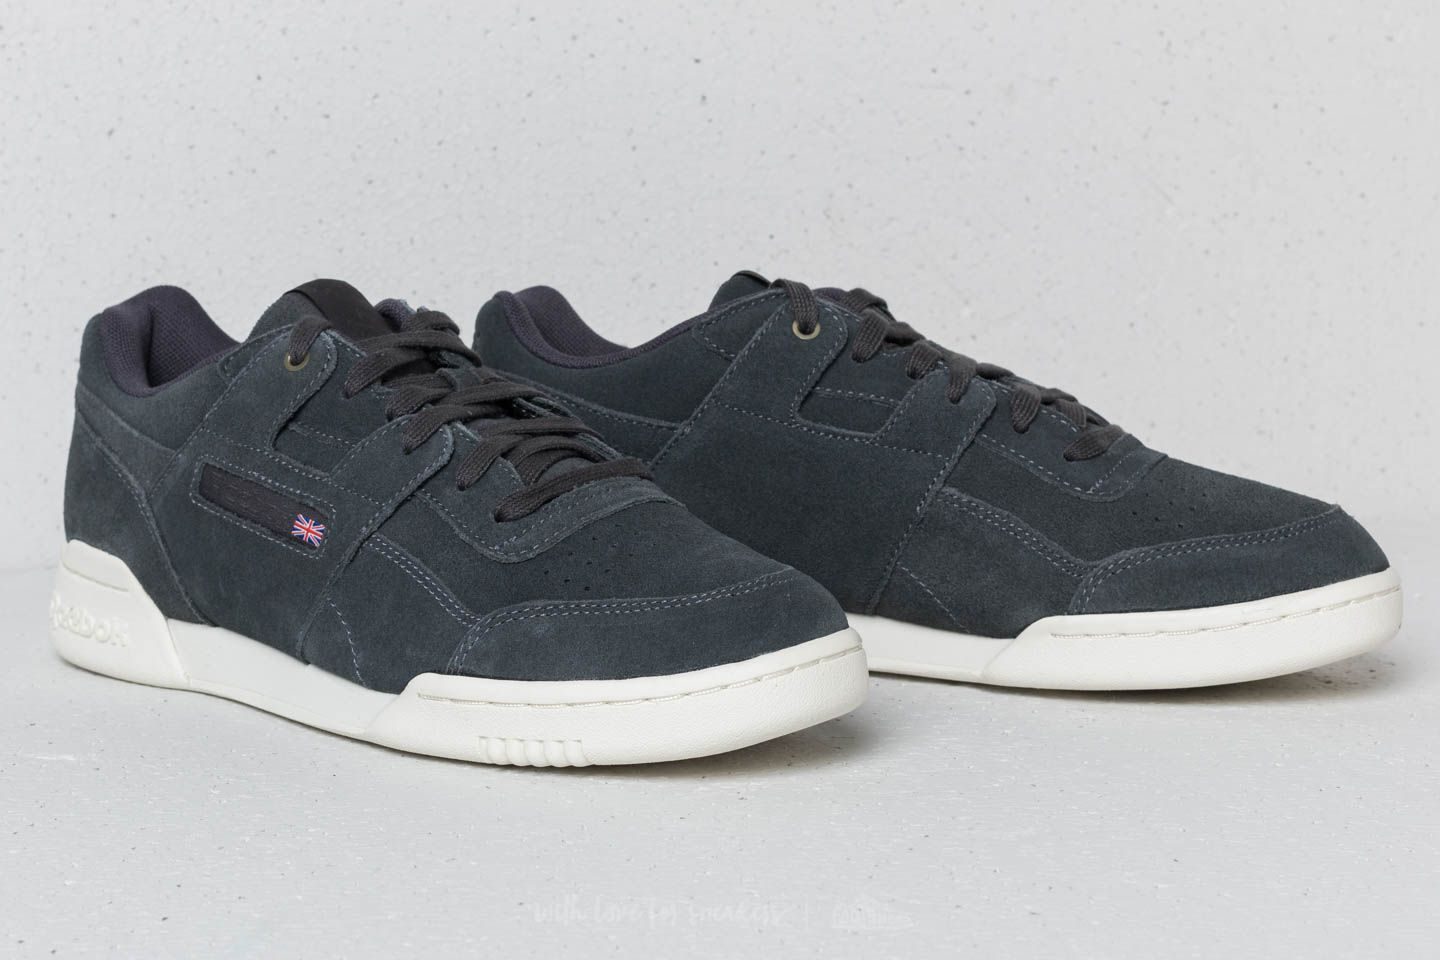 fa9334f2810e5b Reebok x Montana Cans Workout Plus Coal  Chalk at a great price £51 buy